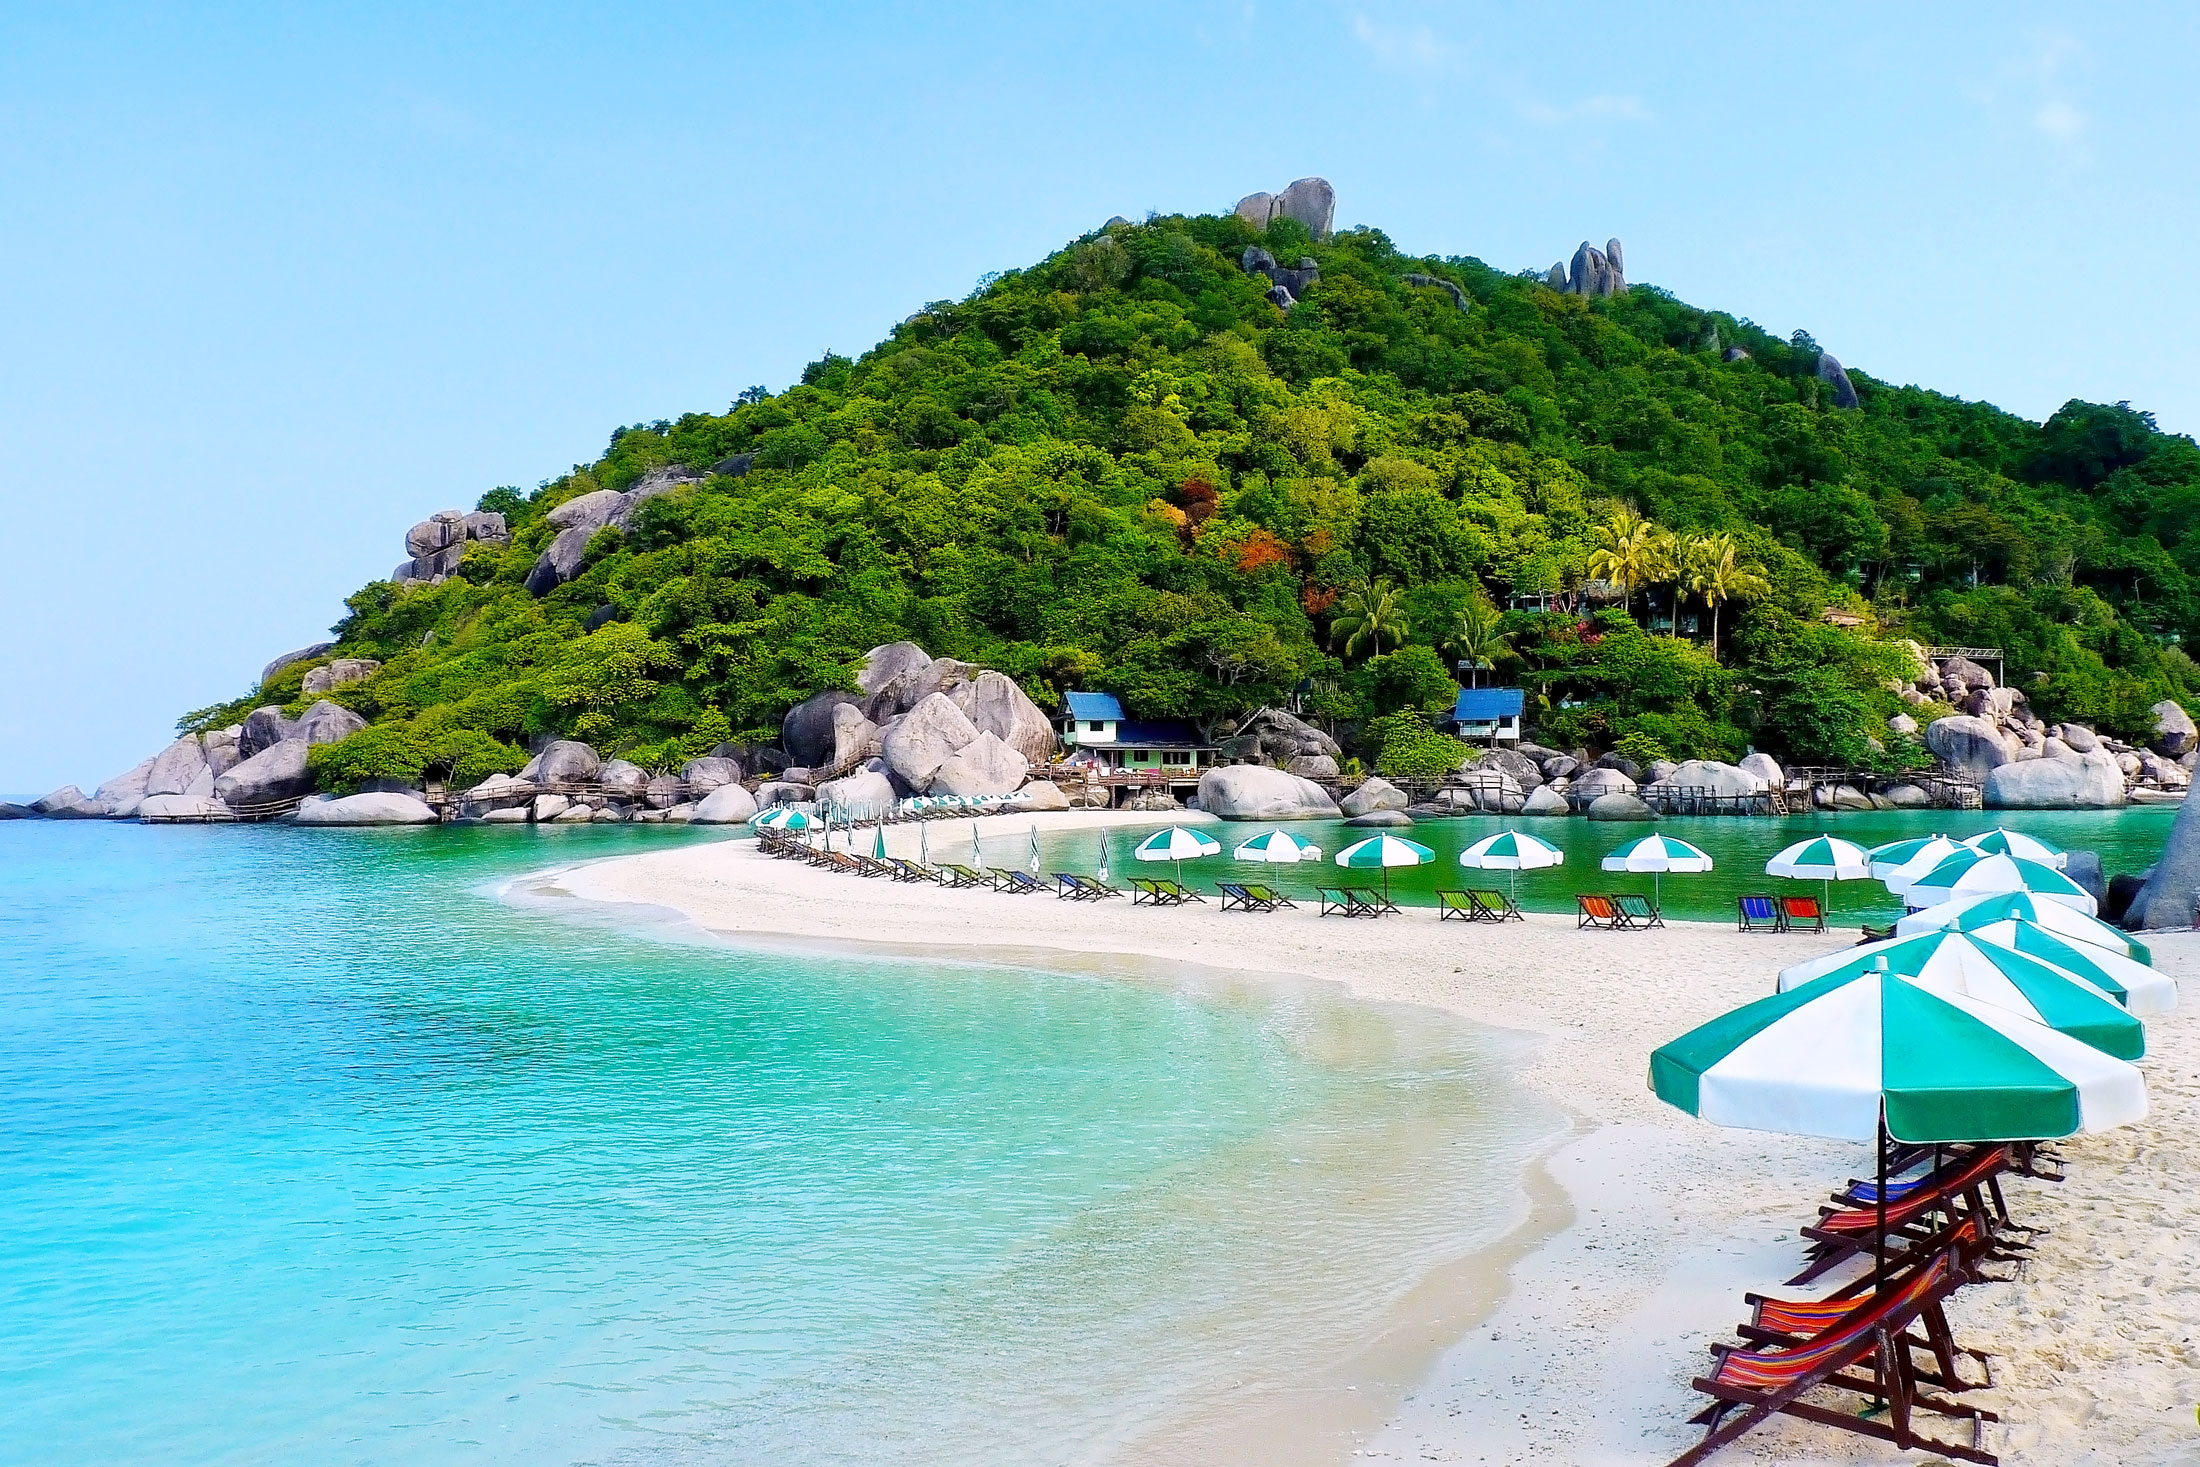 Nang-Yuan-Island-Viewpoint-,-Surat-Thani-,-Thailand_tropicallife